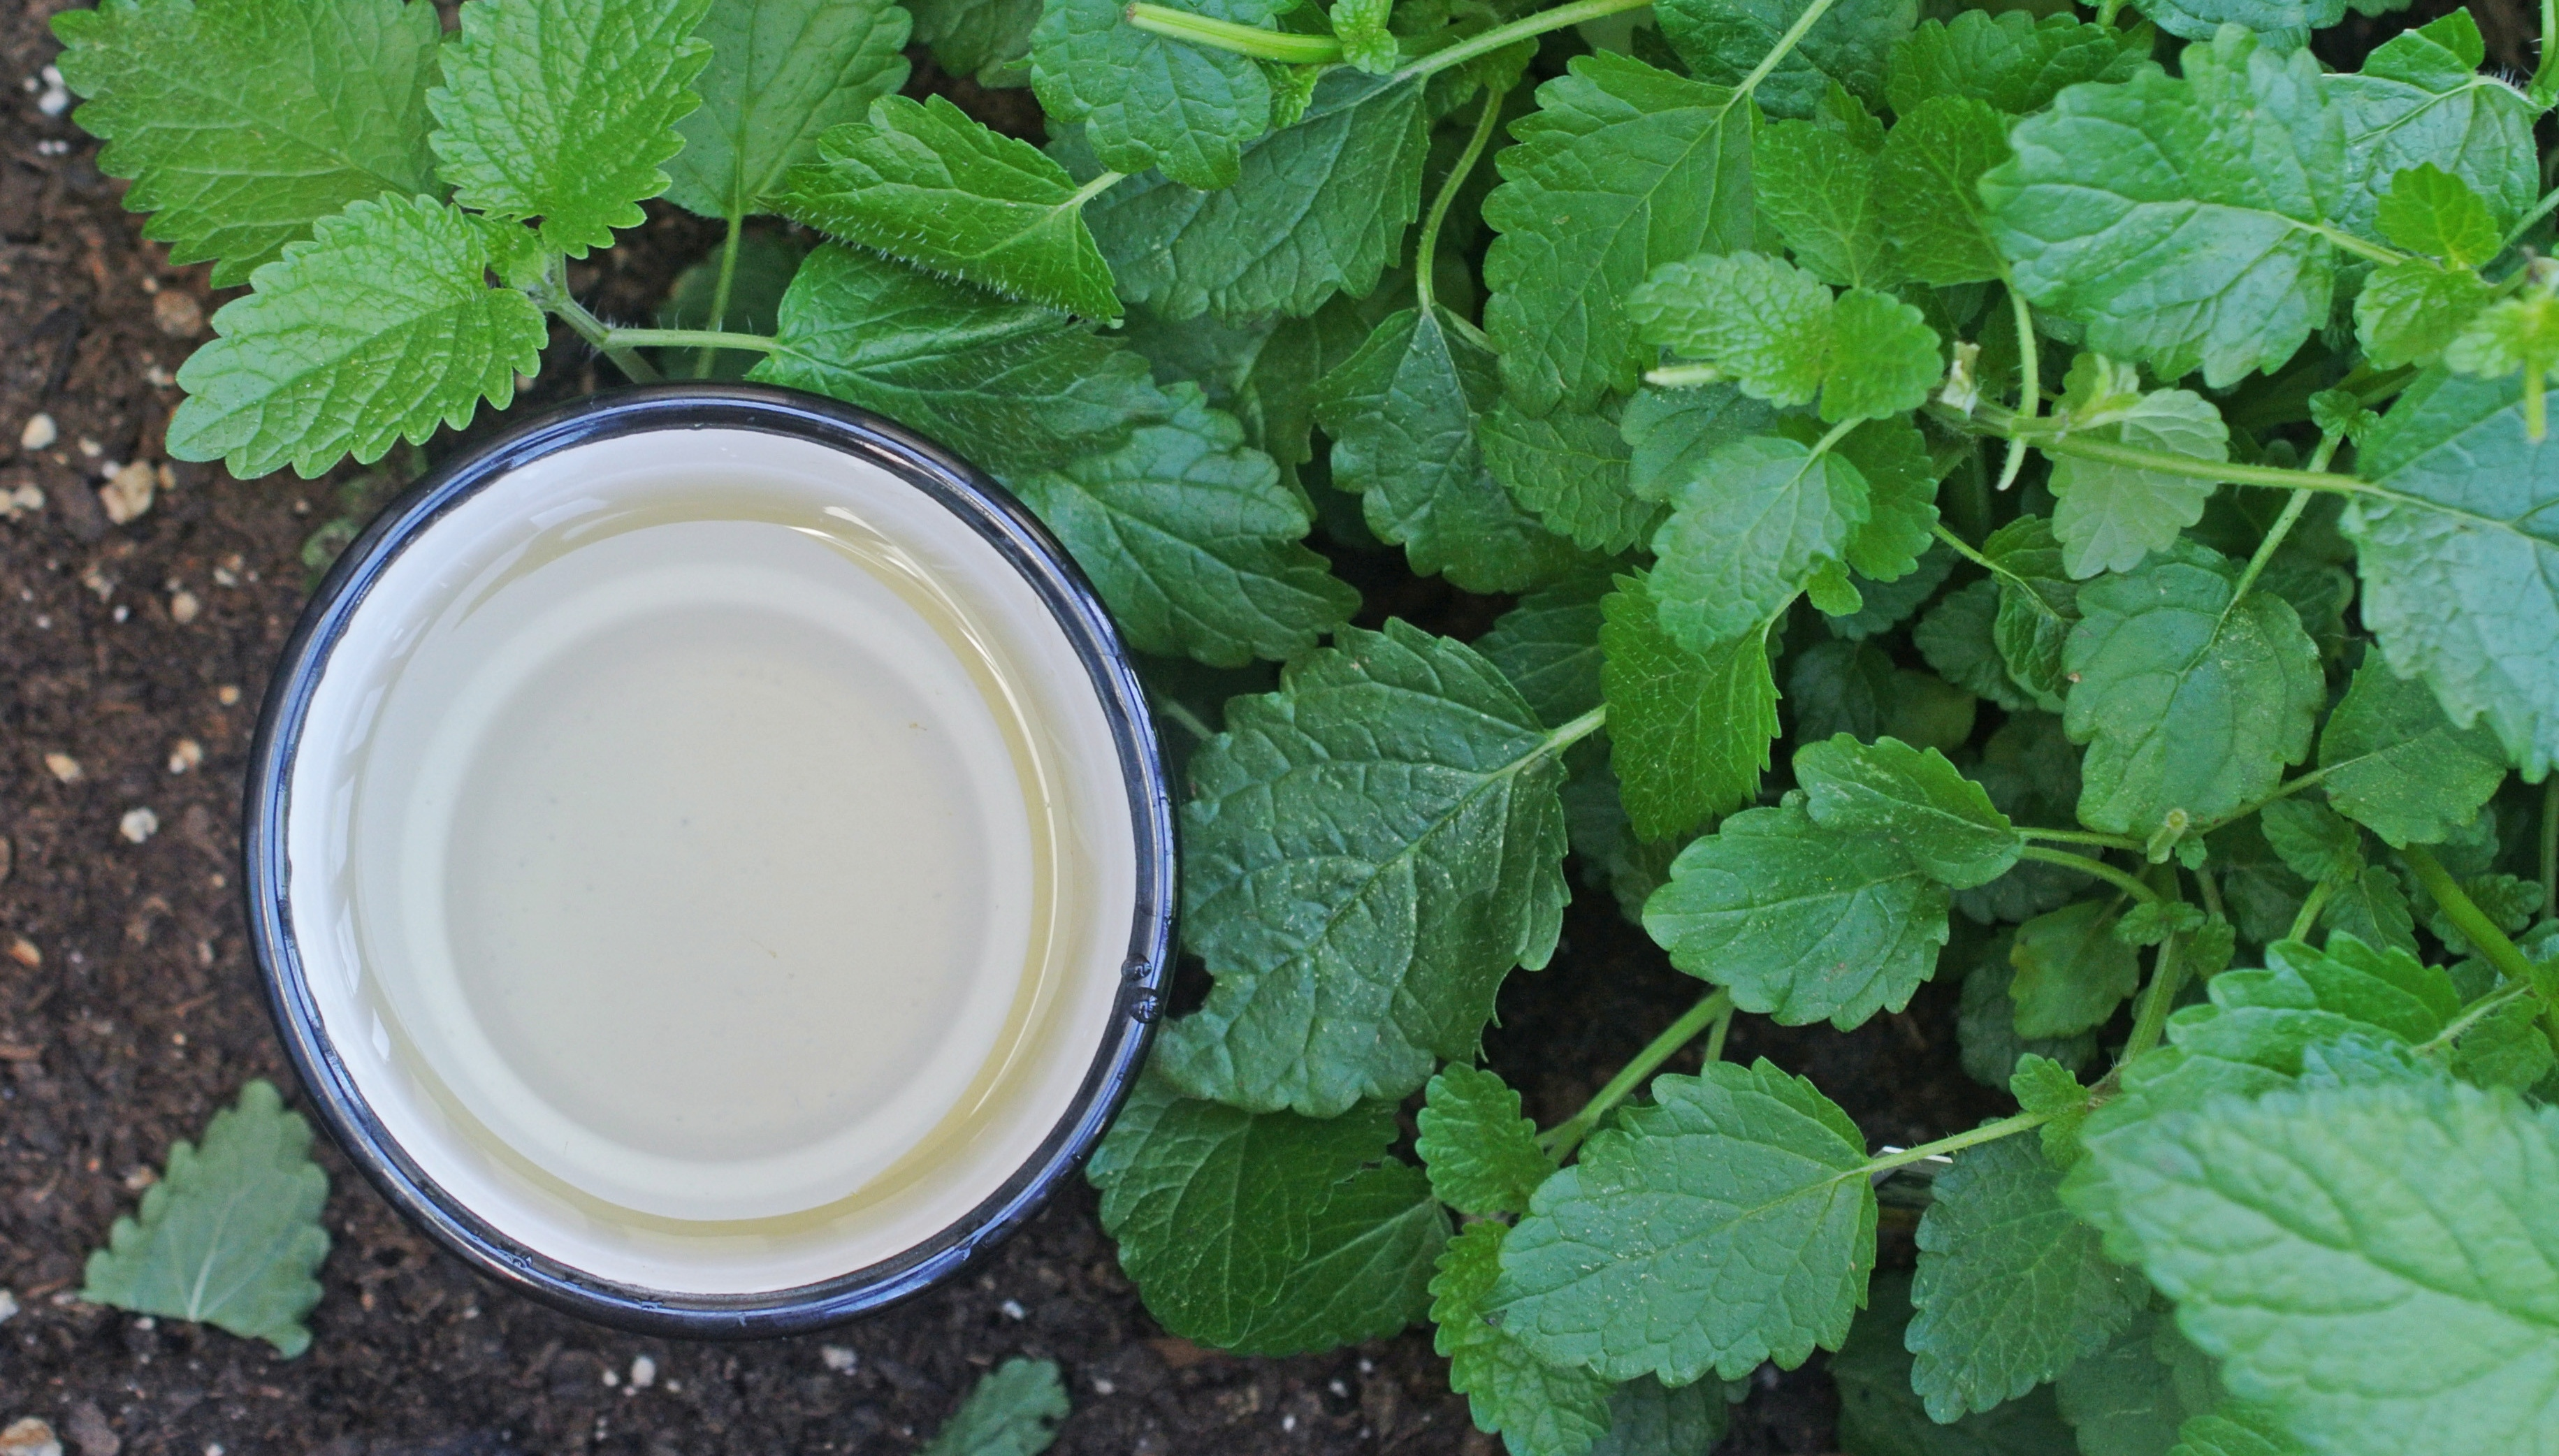 lemon-balm-plants